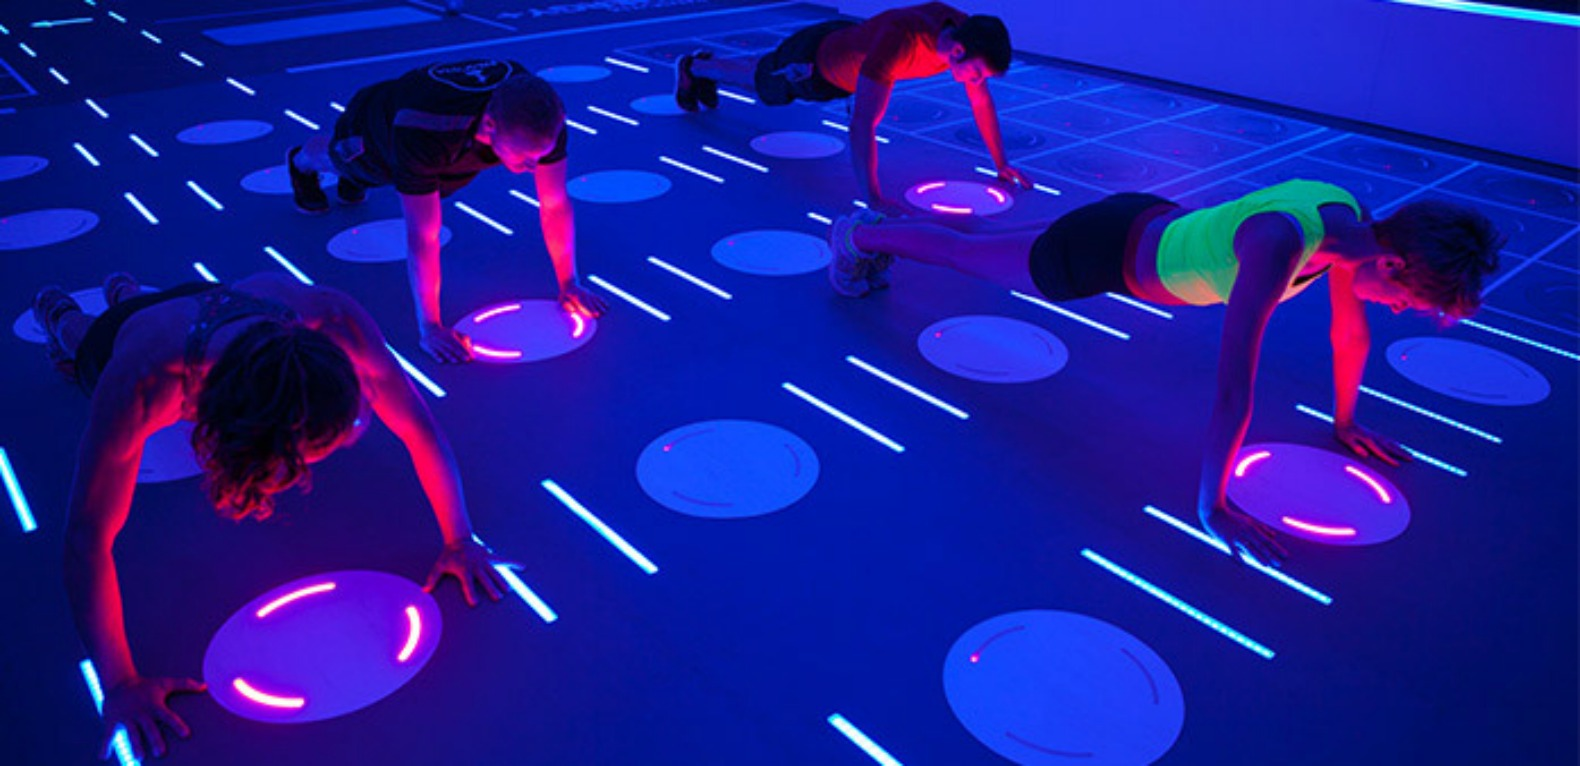 Working out at this trippy LED gym is like stepping into a video game